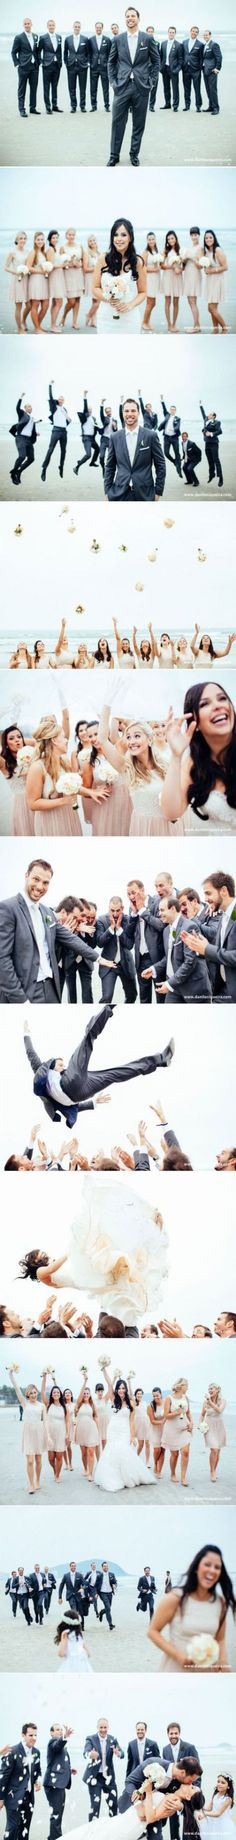 Wedding photography poses bridal party groomsmen group shots new ideas Wedding Pictures Beach, Wedding Picture Poses, Wedding Photography Poses, Wedding Poses, Wedding Beach, Party Pictures, Photography Styles, Photographer Wedding, Portrait Photography